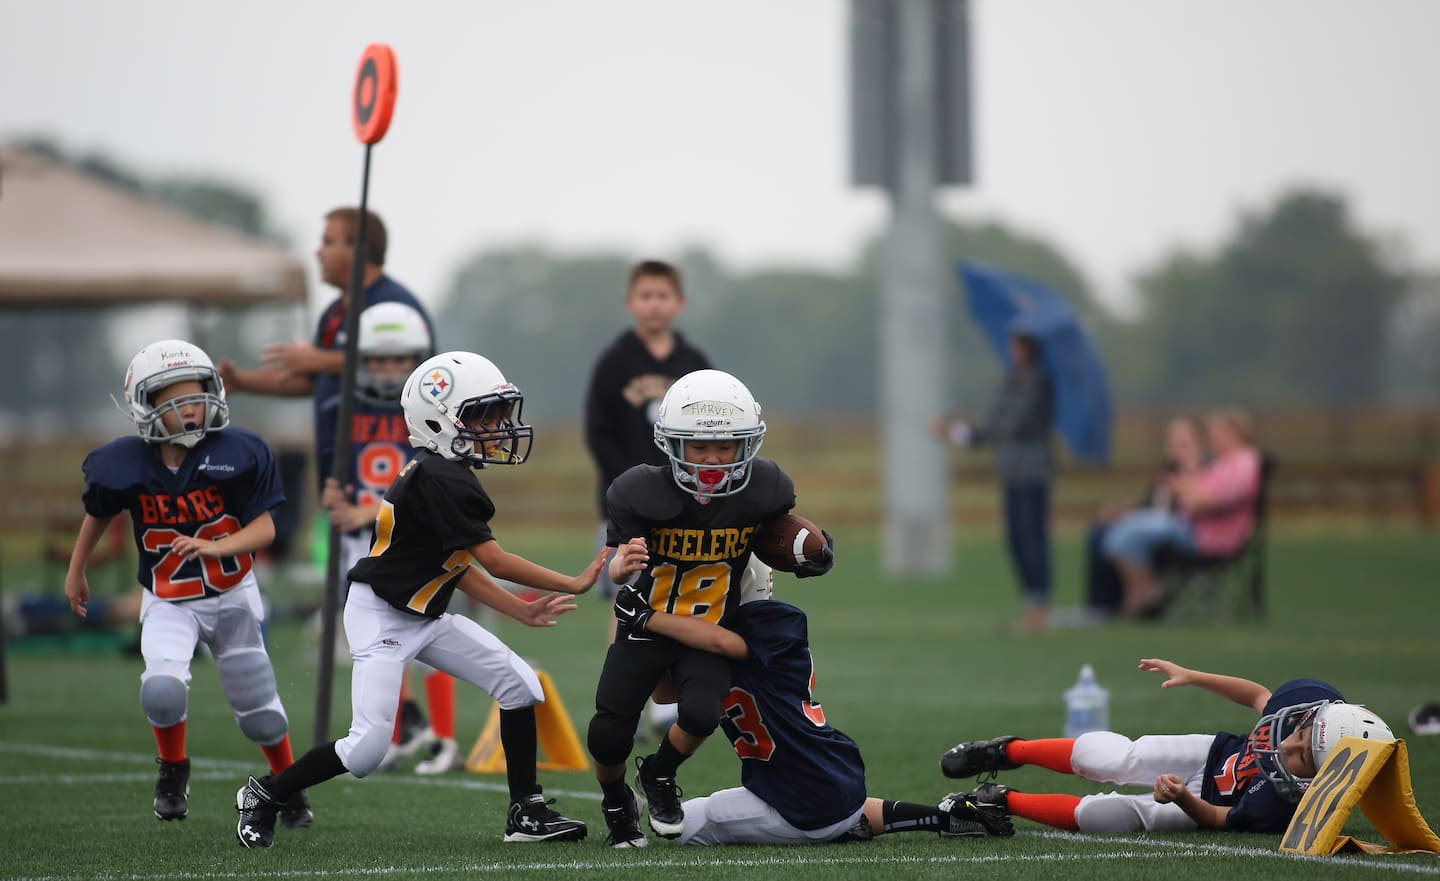 Glenview california physical therapy - How To Avoid Common Football Injuries